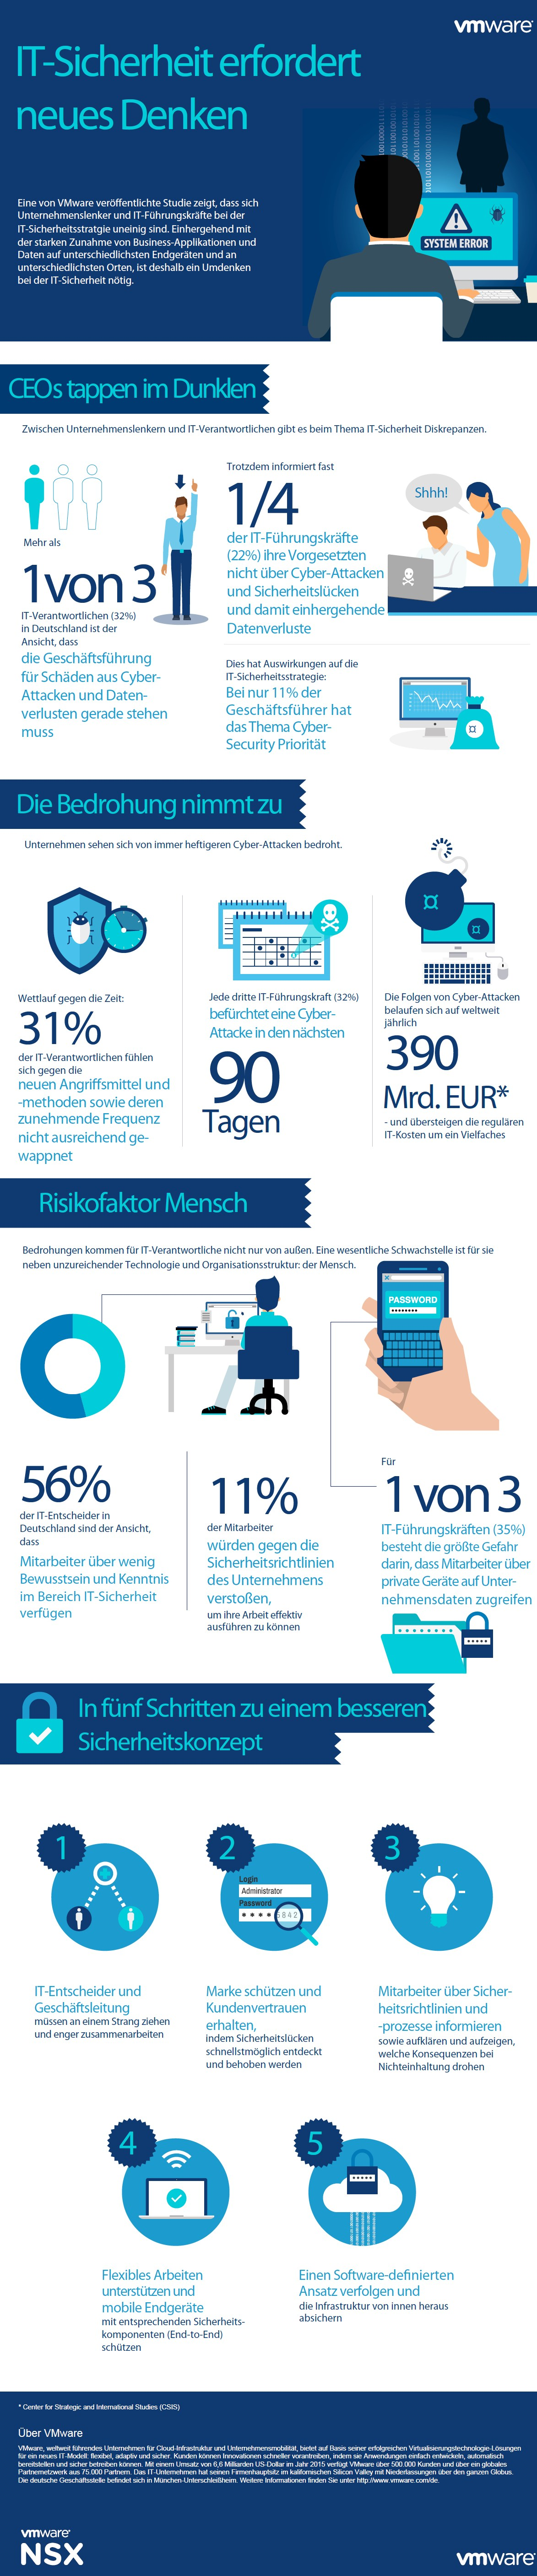 infografik vmware it-sicherheit studie